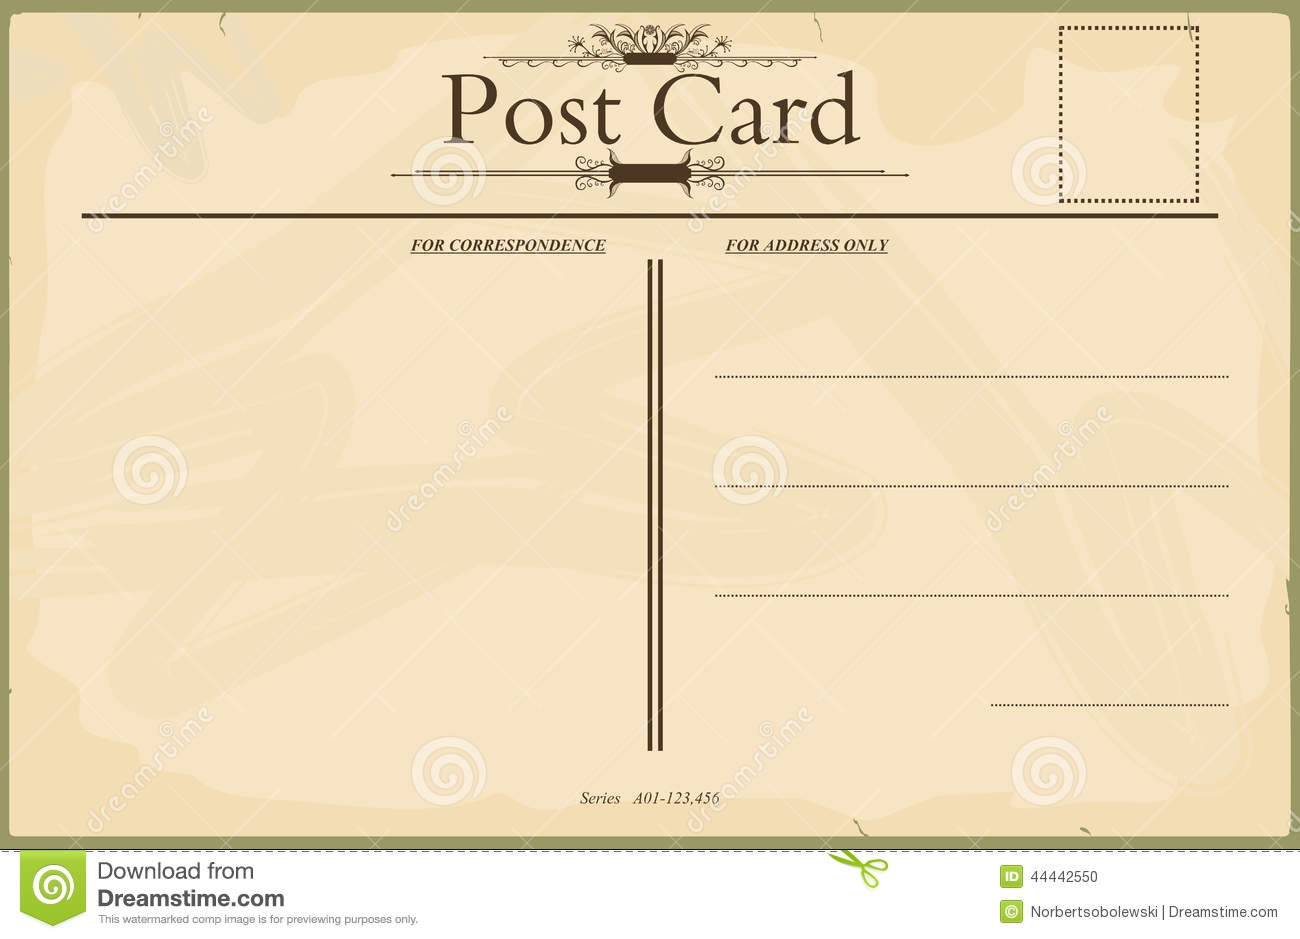 Acceptable Postcard Sizes Pictures To Pin On Pinterest